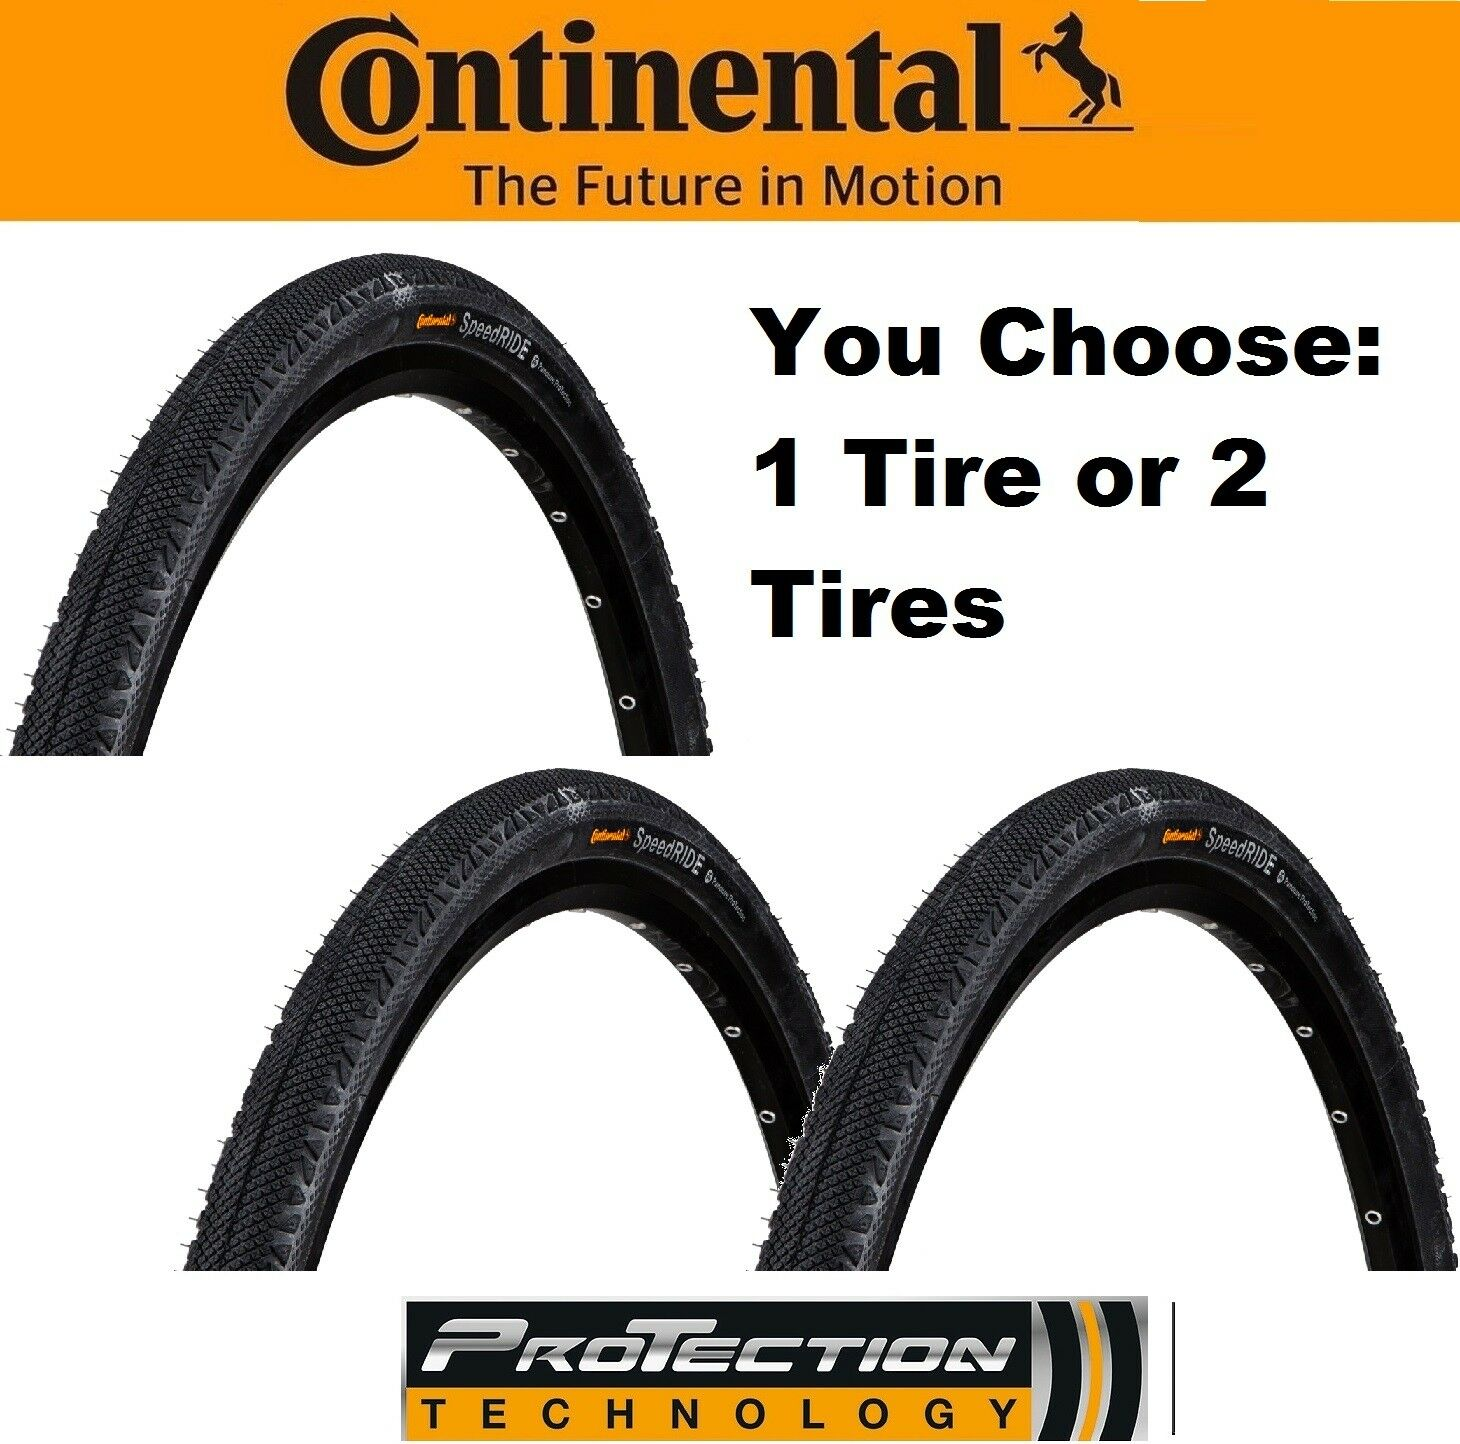 1 or 2Pak Continental Speed Ride 700x42 Flat ProTection  Fold Bike Tire 29  x1.6  best price